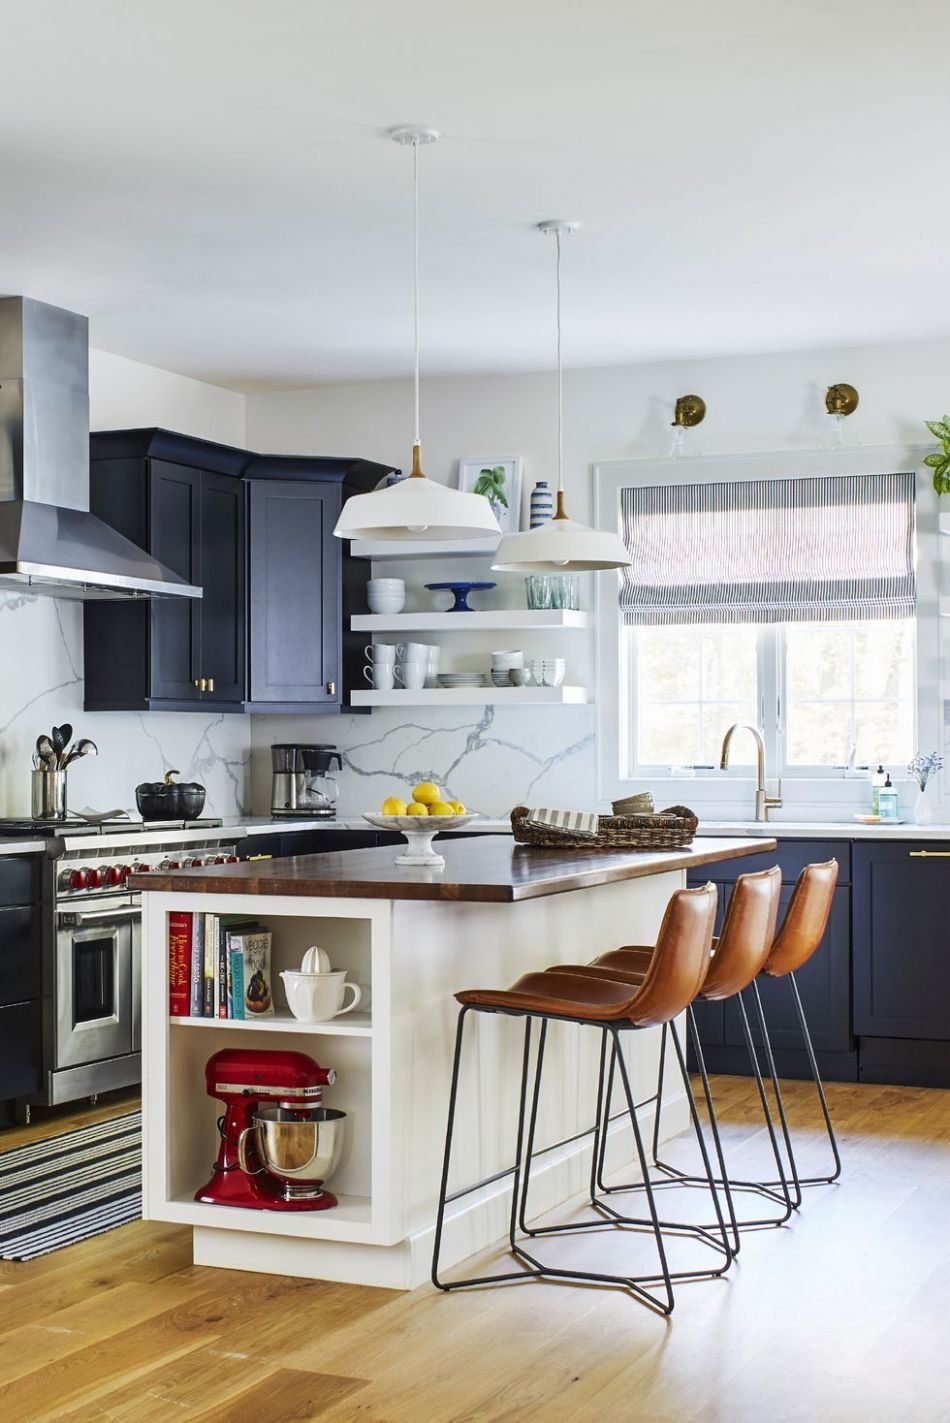 9+ Best Small Kitchen Design Ideas - Tiny Kitchen Decorating - kitchen ideas for small spaces